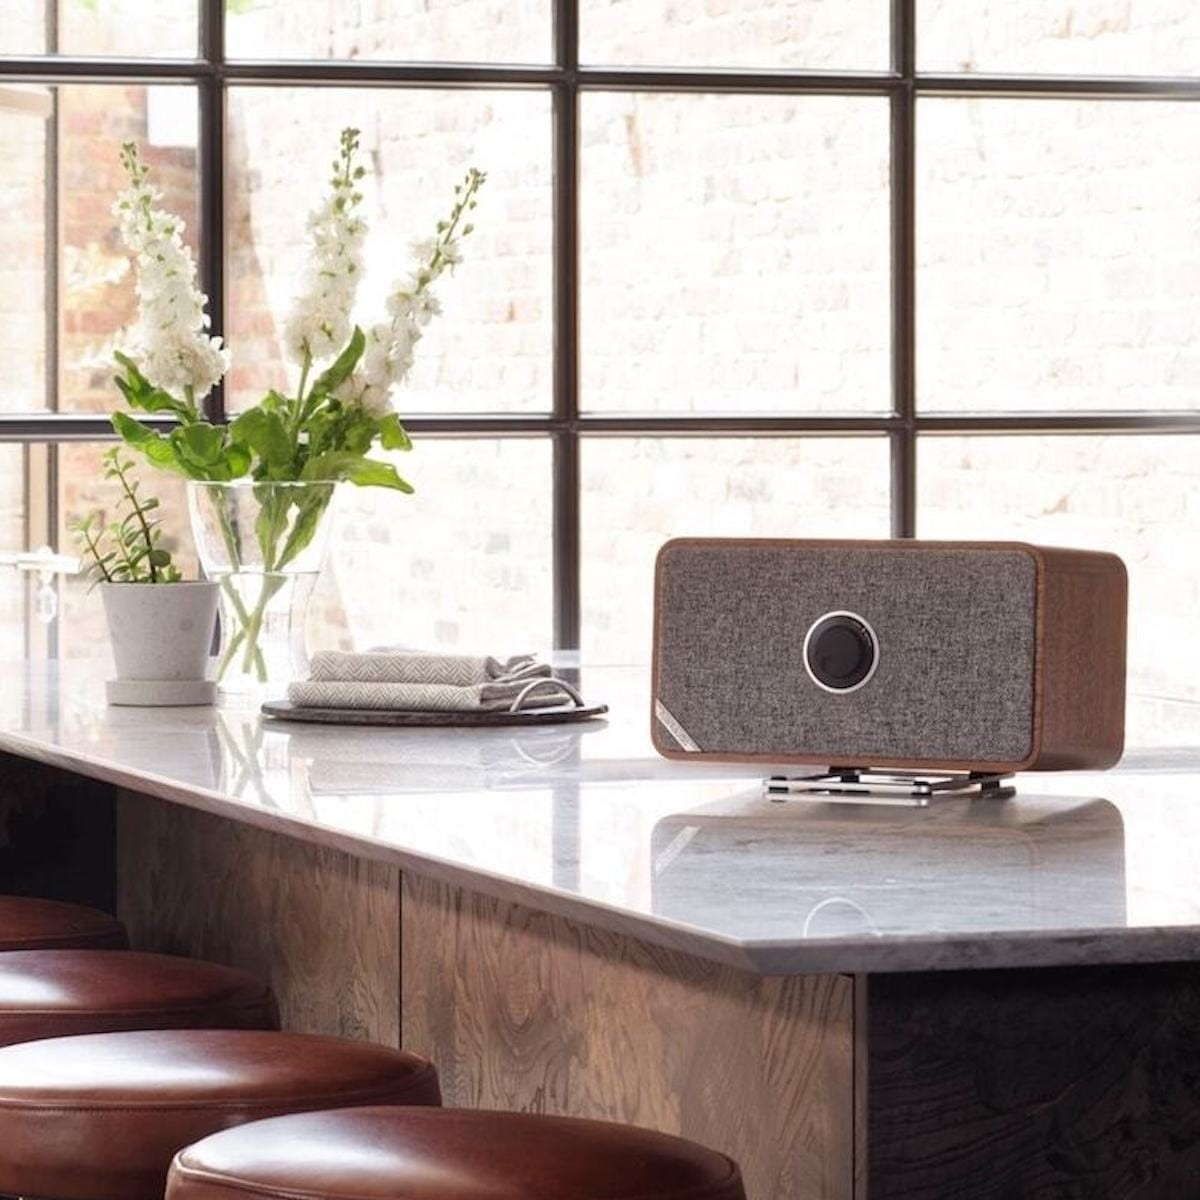 15 Fancy gadgets for your home and office thumbnail